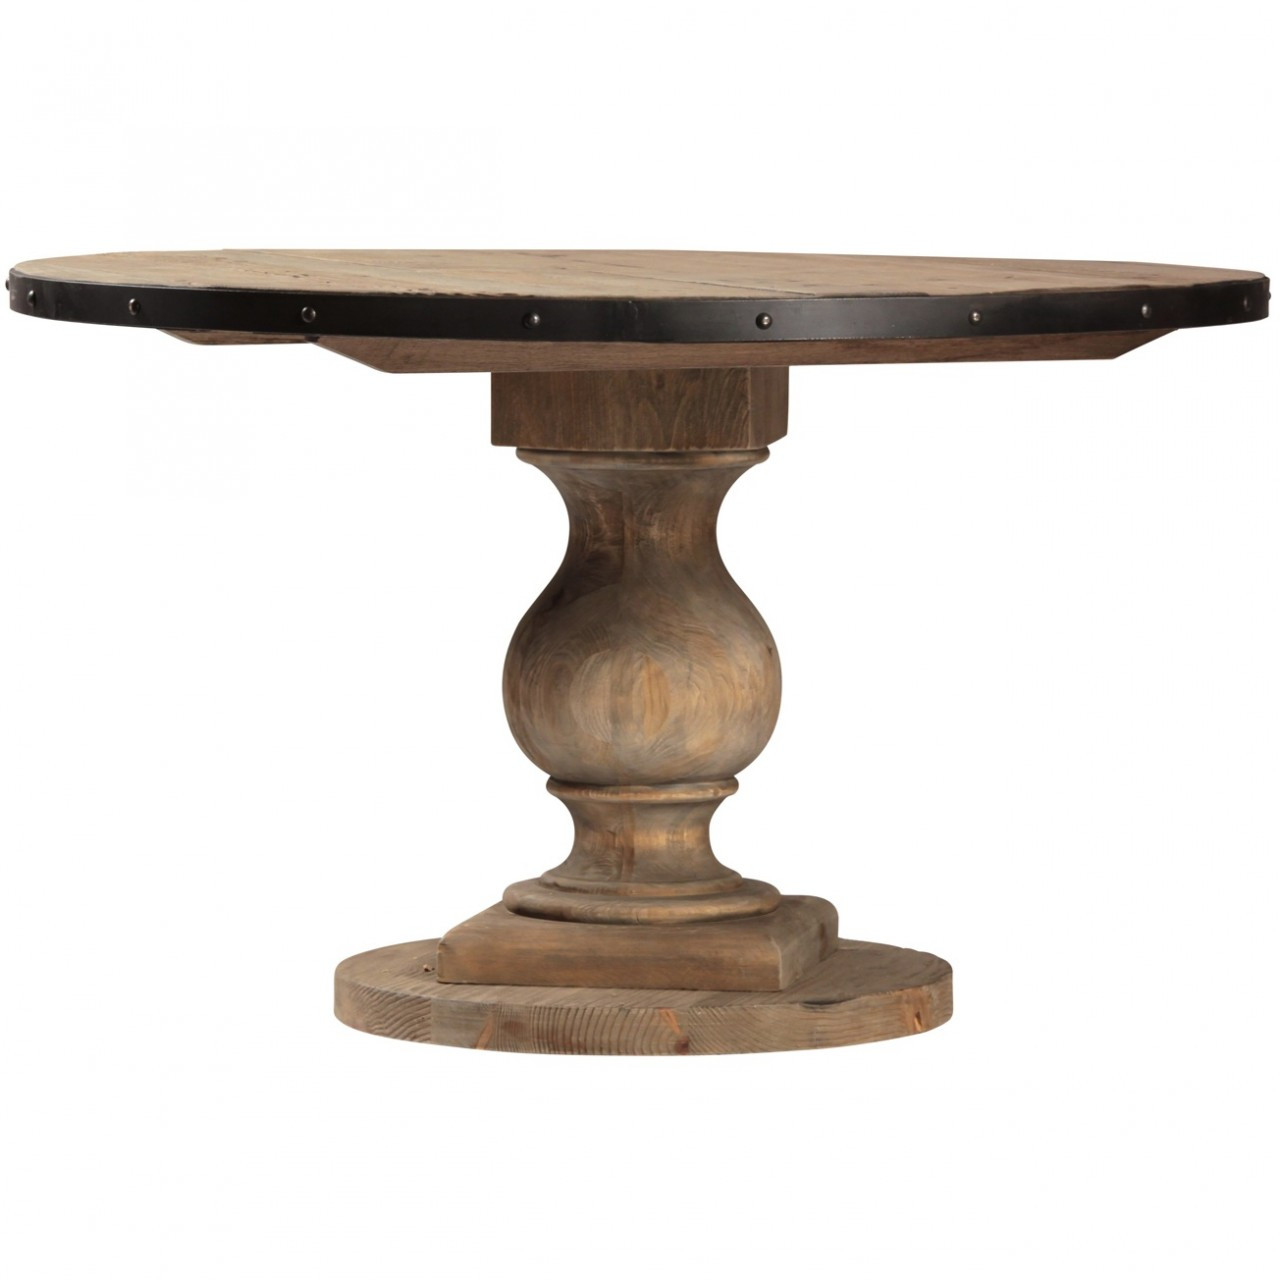 Farmhouse round pedestal dining room table 51quot zin home for Pedestal dining table